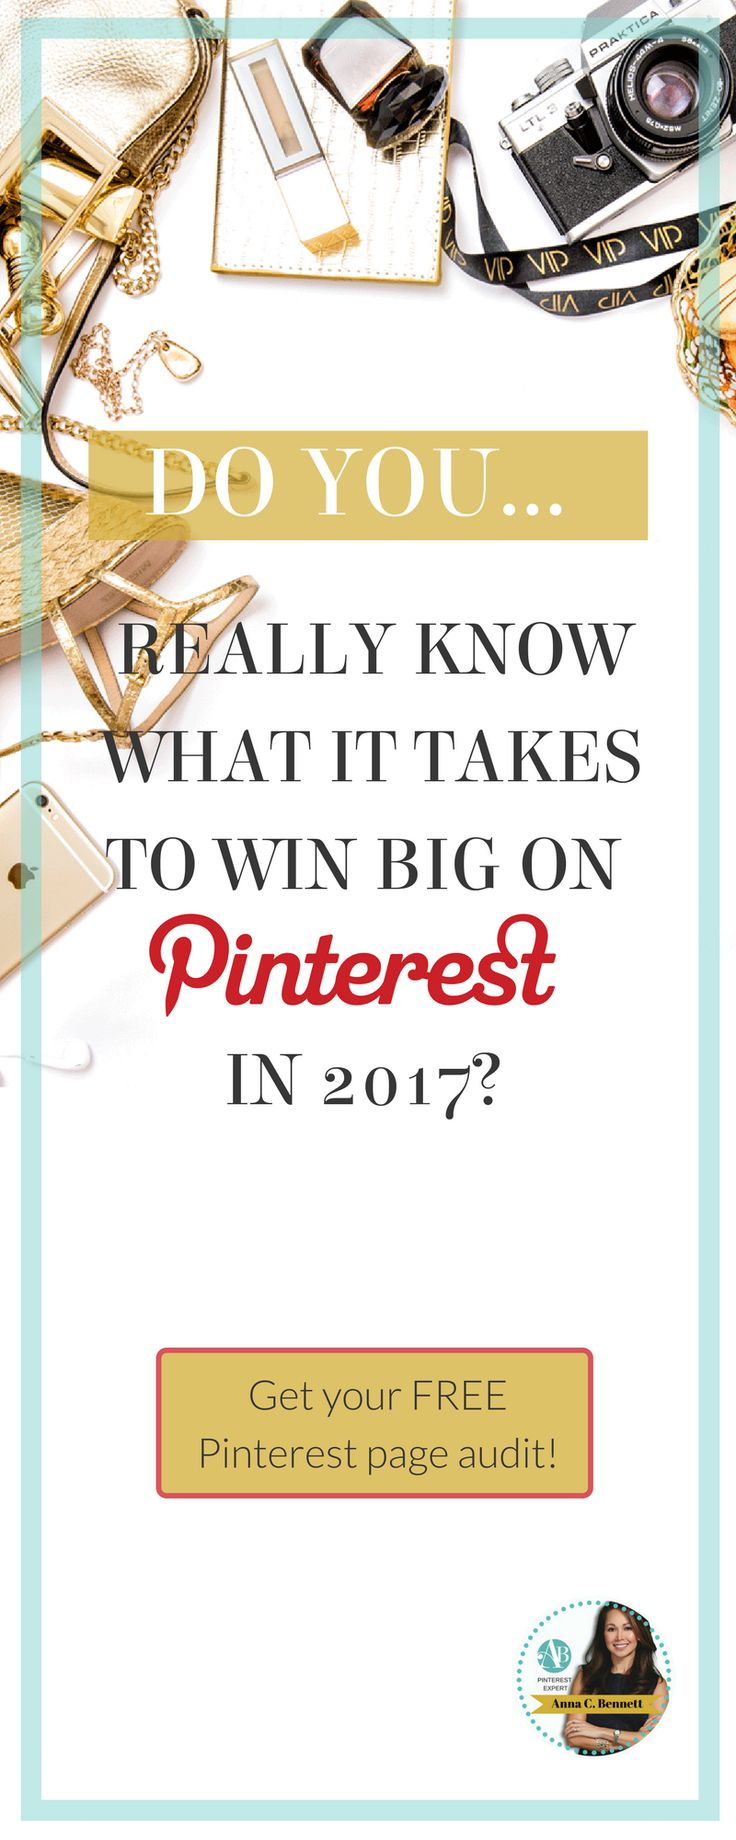 Download Pinterest Strategy Free Template | Click here to find out how to get your FREE Pinterest Marketing Audit from Pinterest Expert Anna Bennett https://www.whiteglovesocialmedia.com/pinterest-consultant | Pinterest Tips for Business | Social Media Marketing